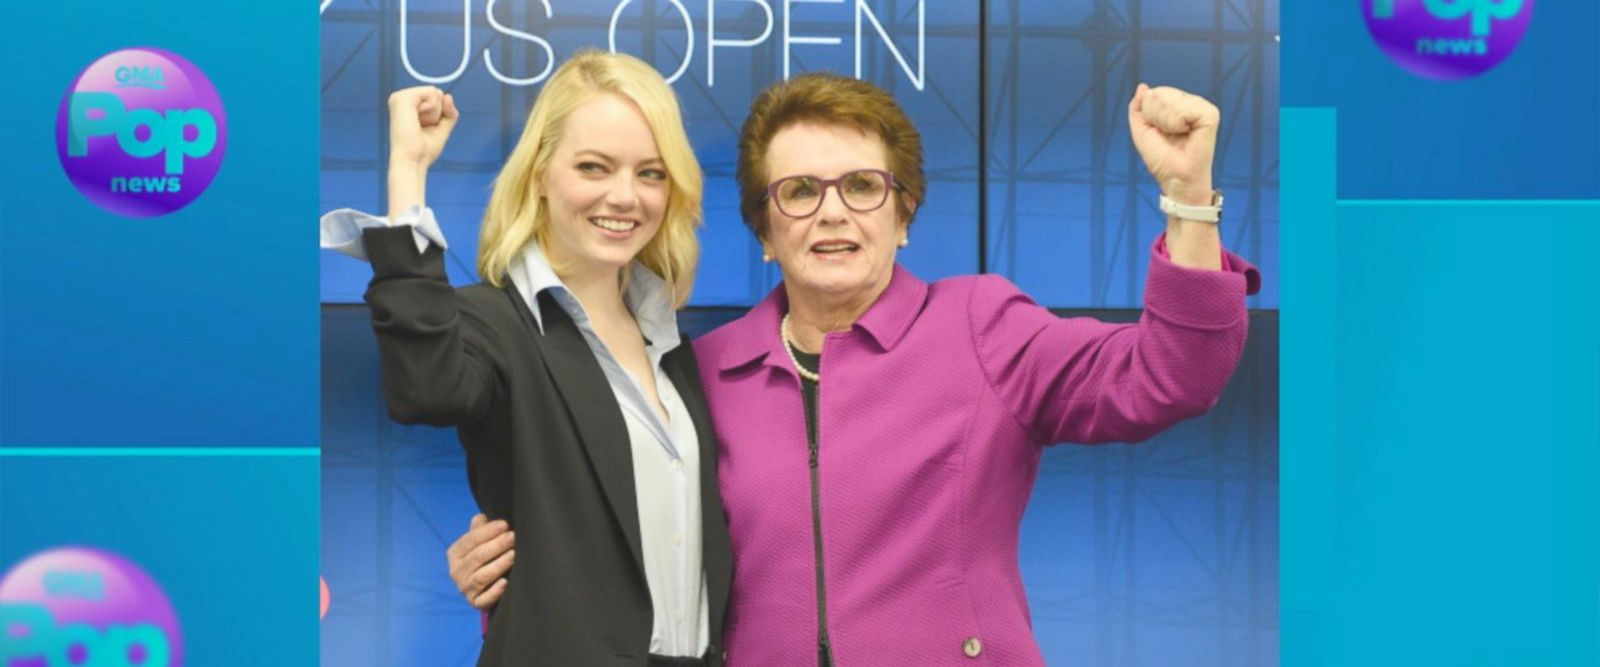 VIDEO: How Emma Stone became tennis legend Billie Jean King for 'Battle of the Sexes'